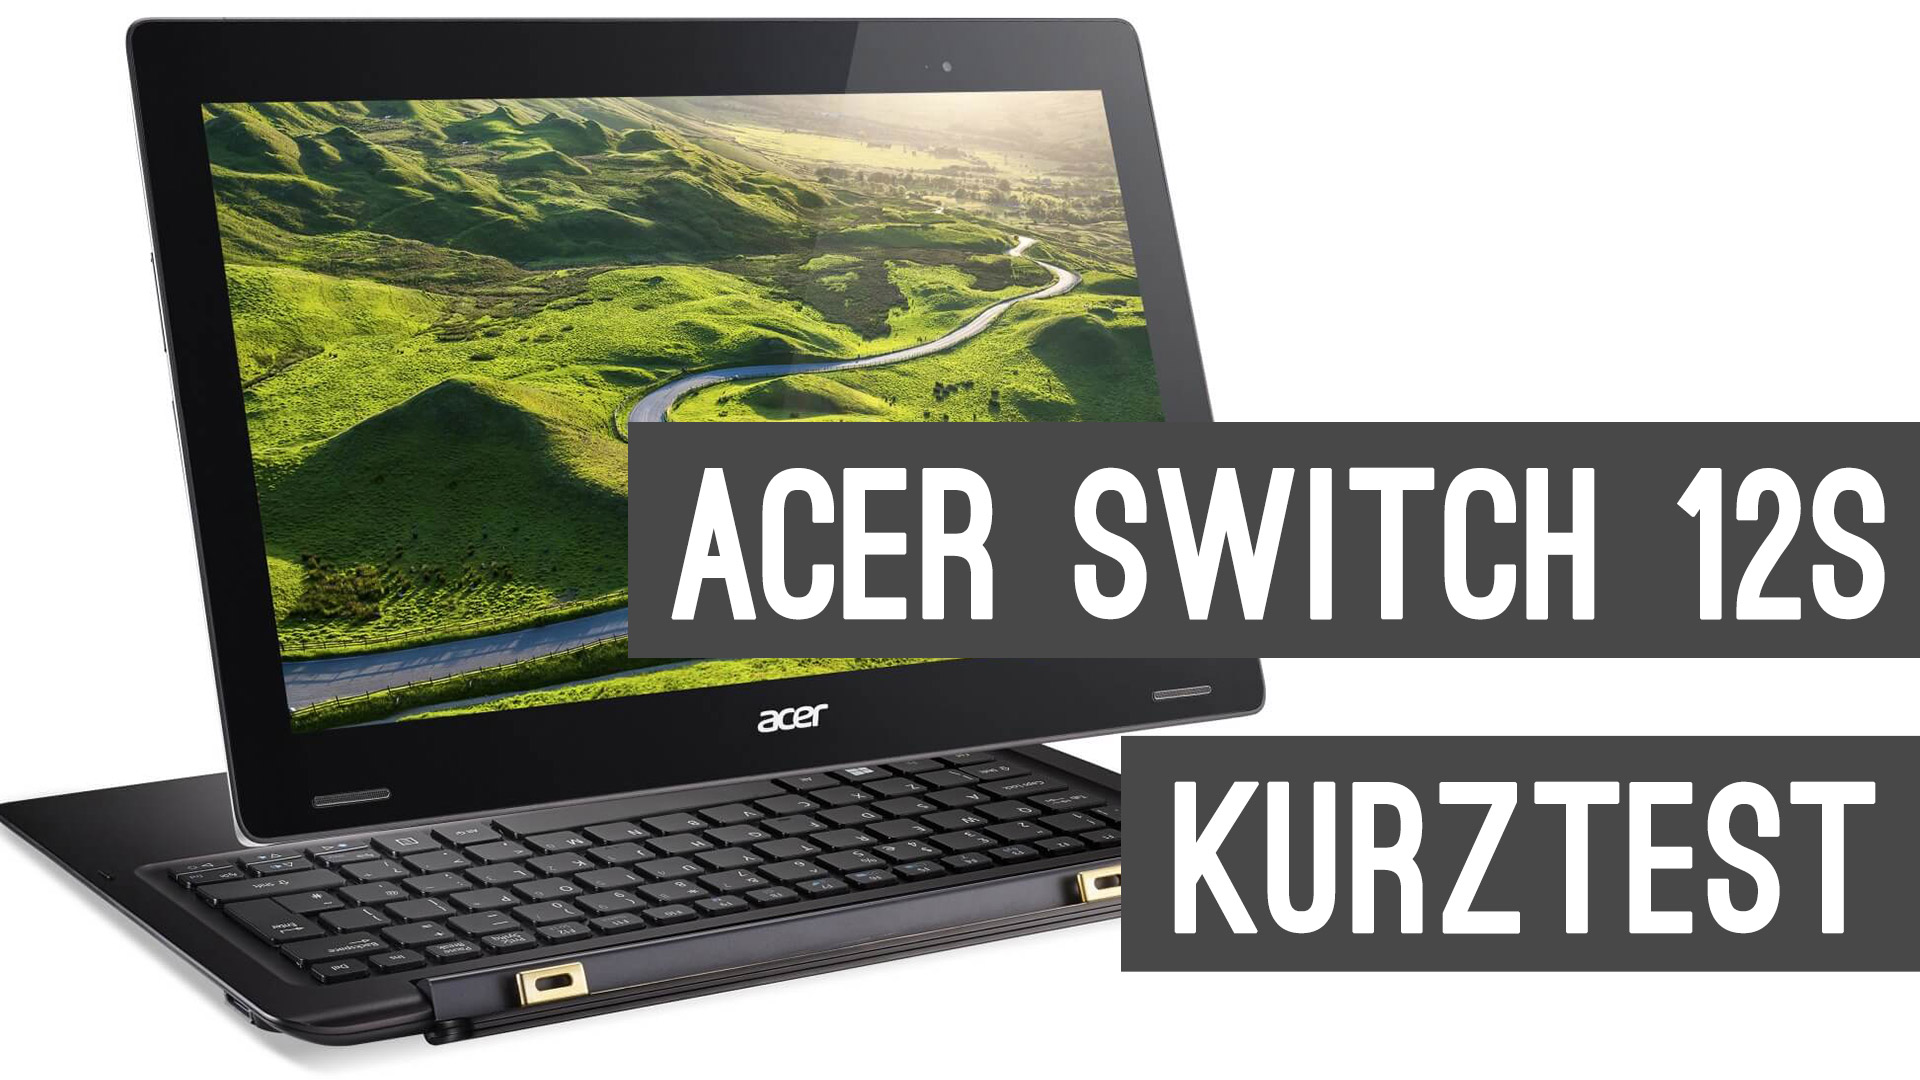 Acer Aspire Switch 12S Kurztest